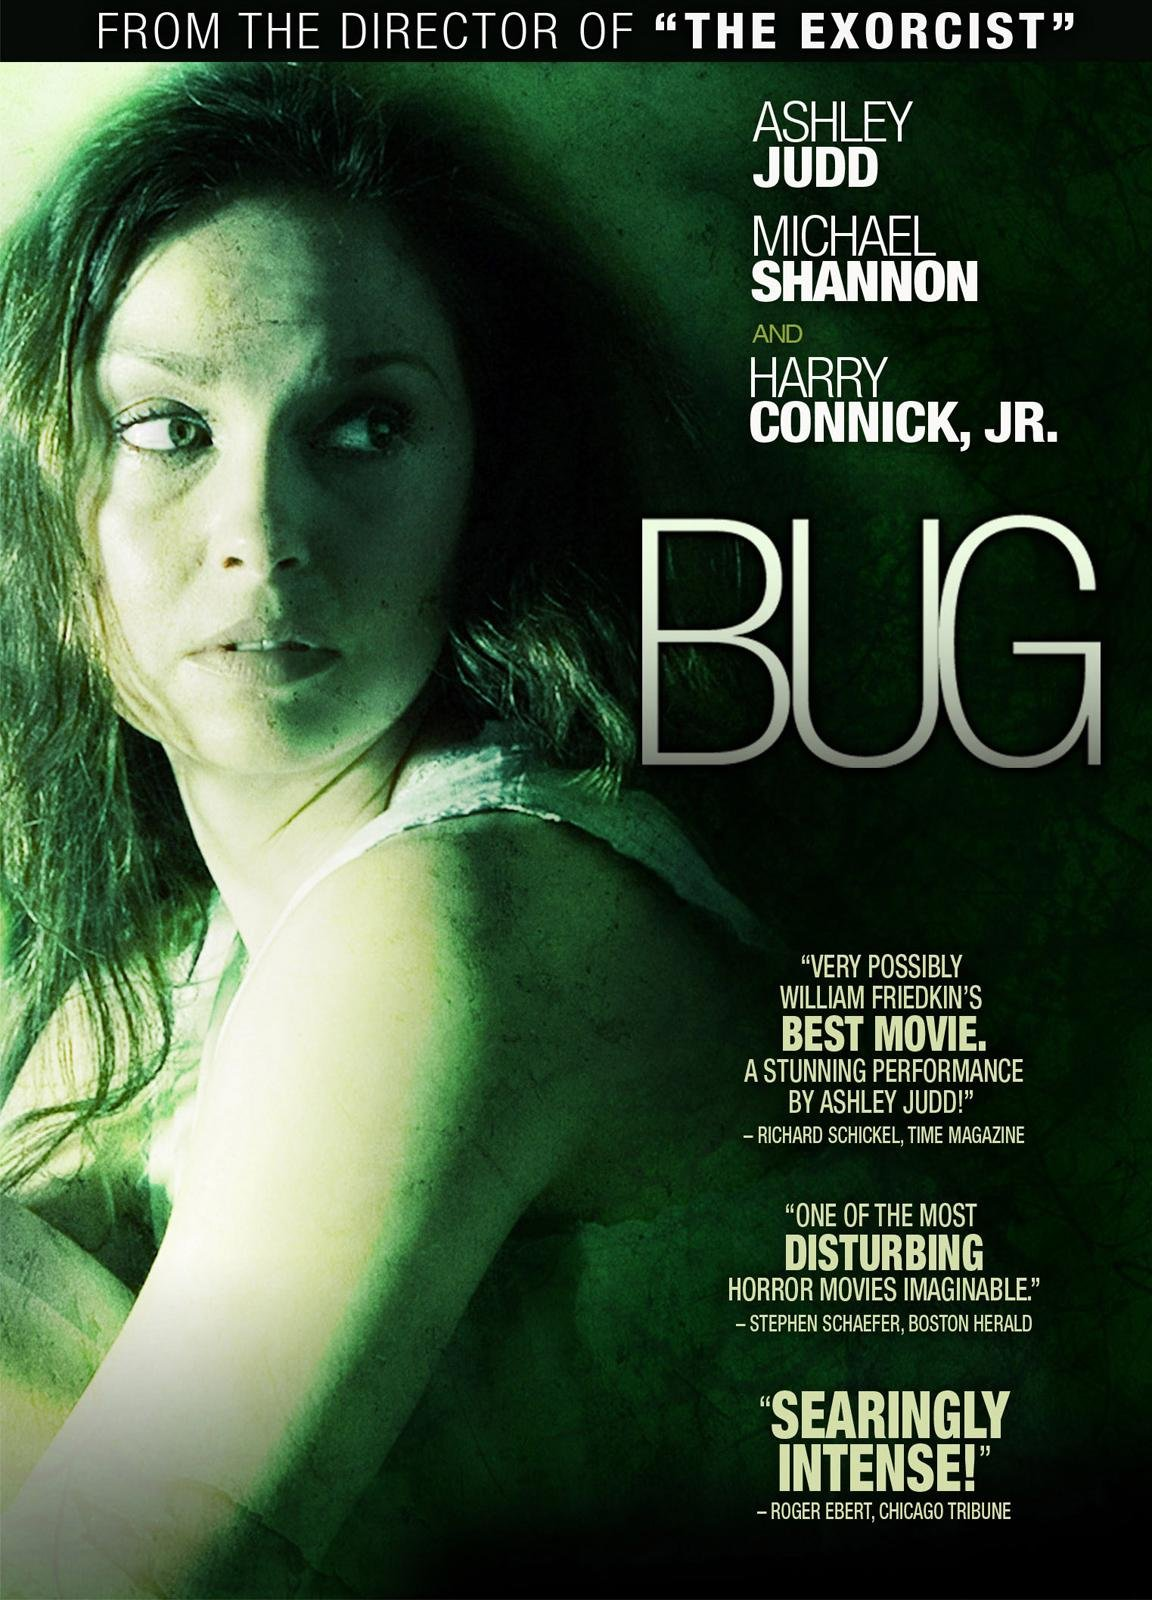 Bug directed by William Friedkin